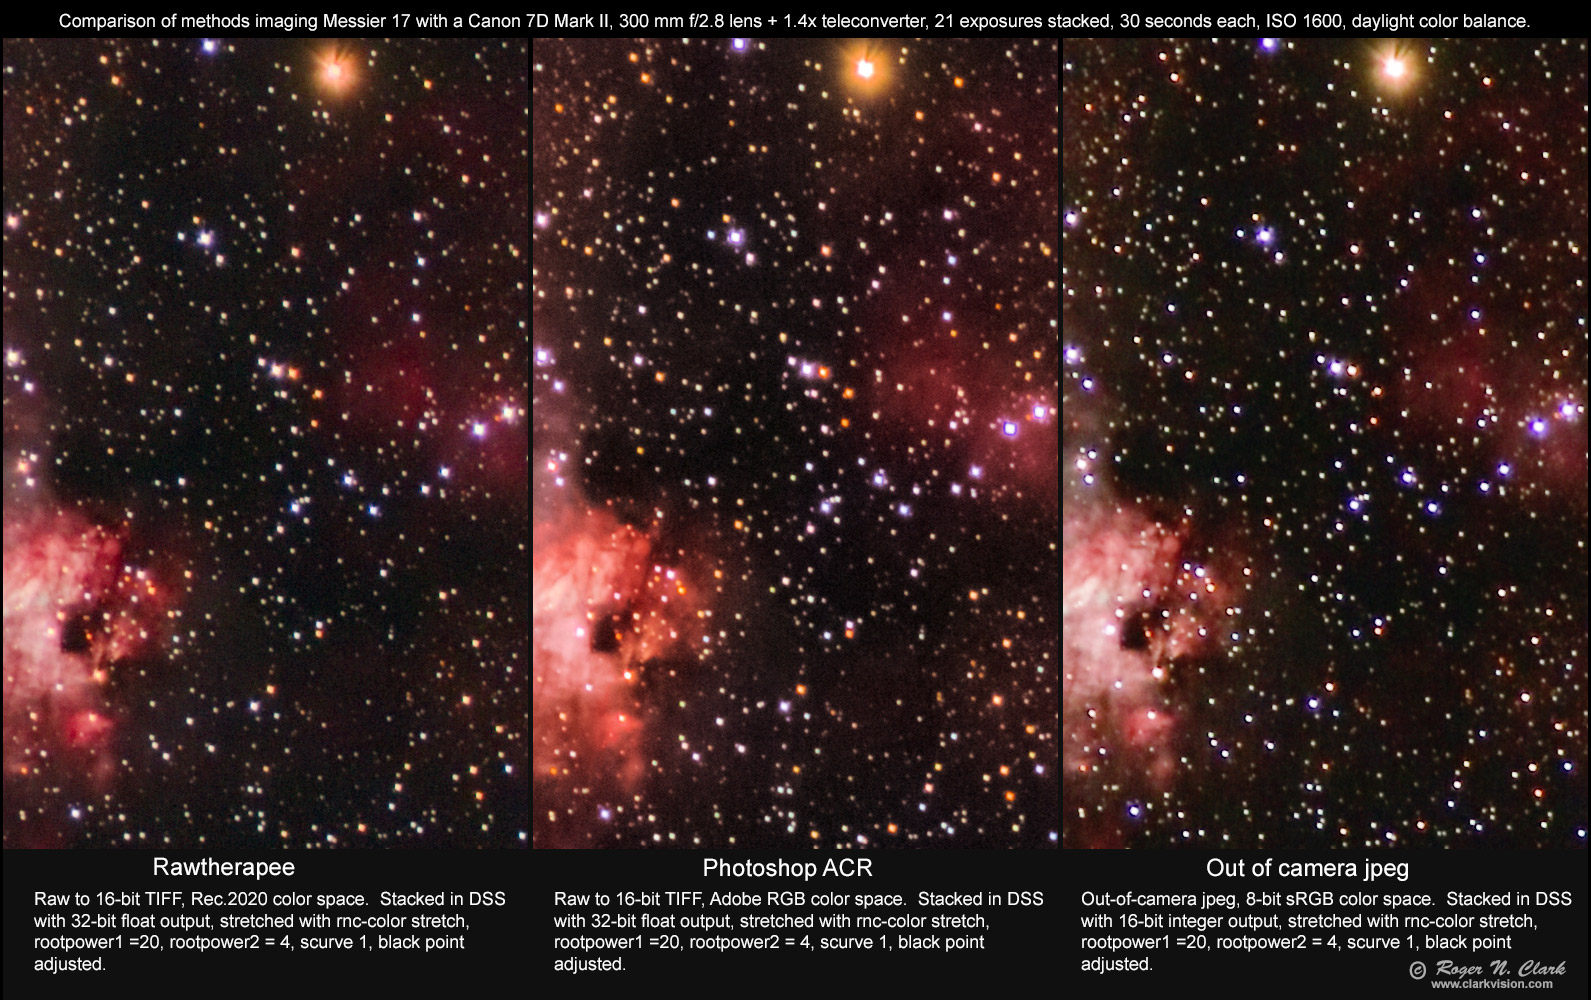 Best Raw Converter 2020 Astrophotography with RawTherapee, Clarkvision.com